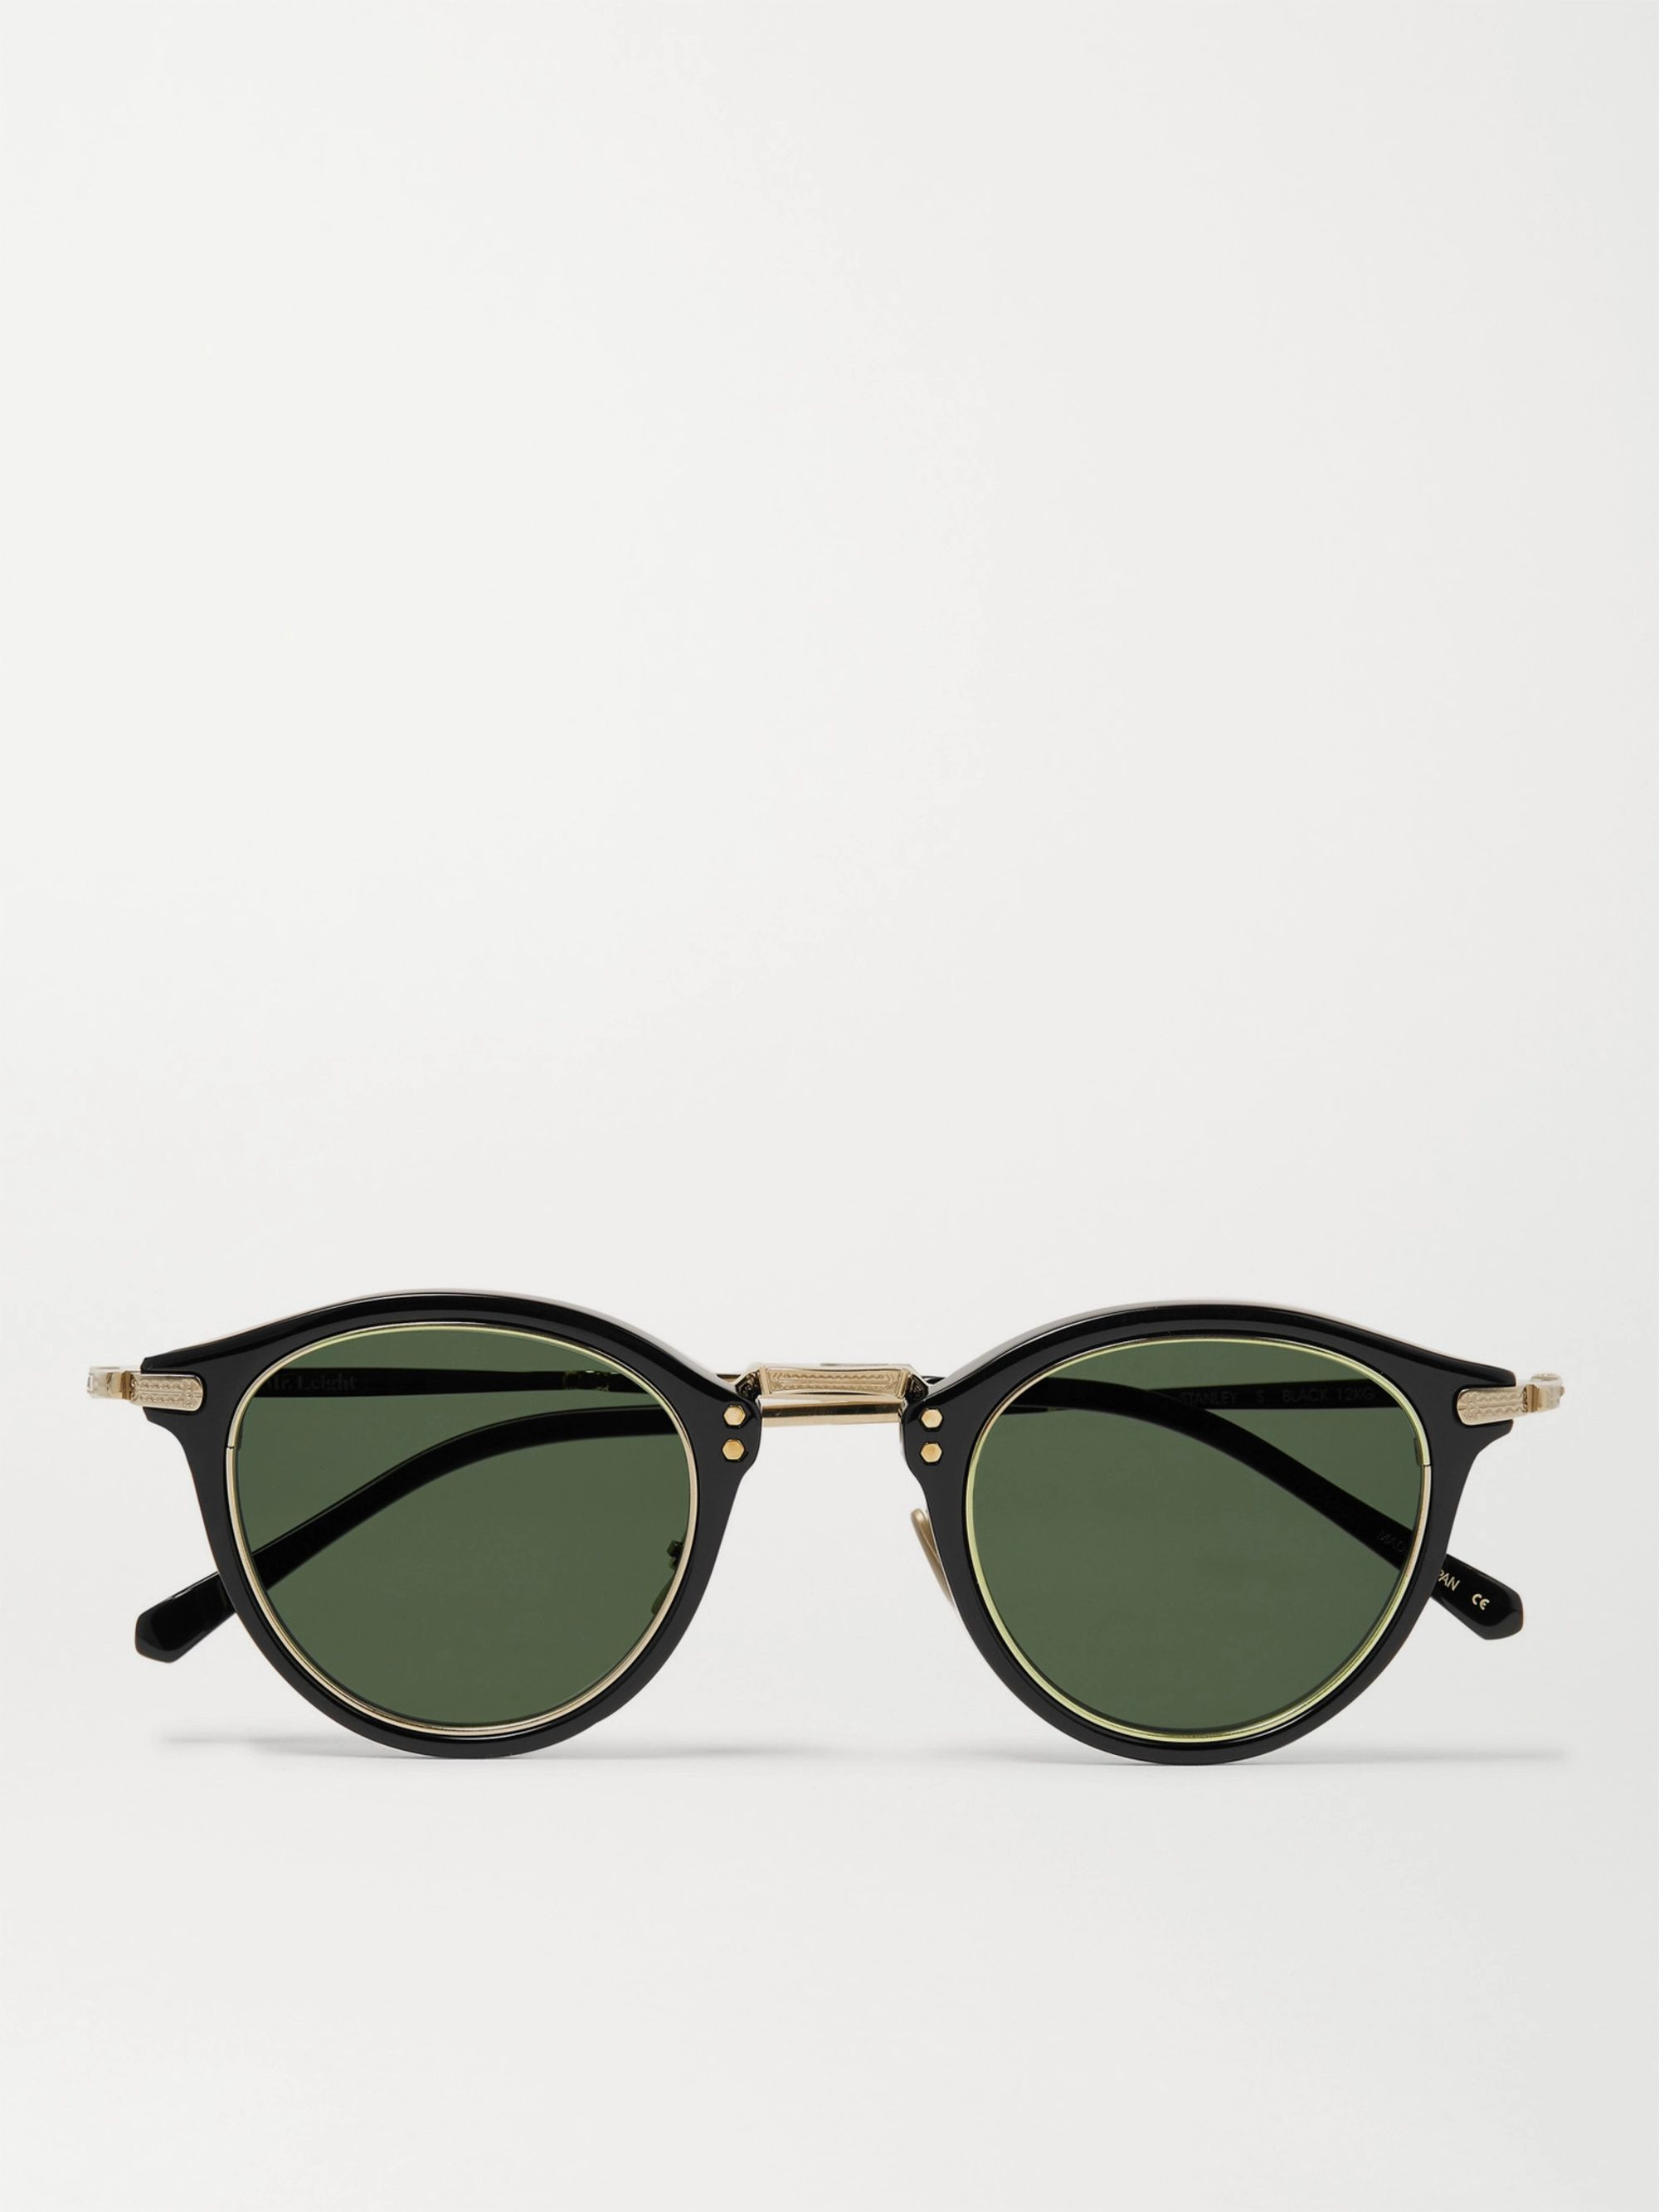 Mr Leight Stanley S Round-Frame Acetate and Gold-Tone Titanium Sunglasses